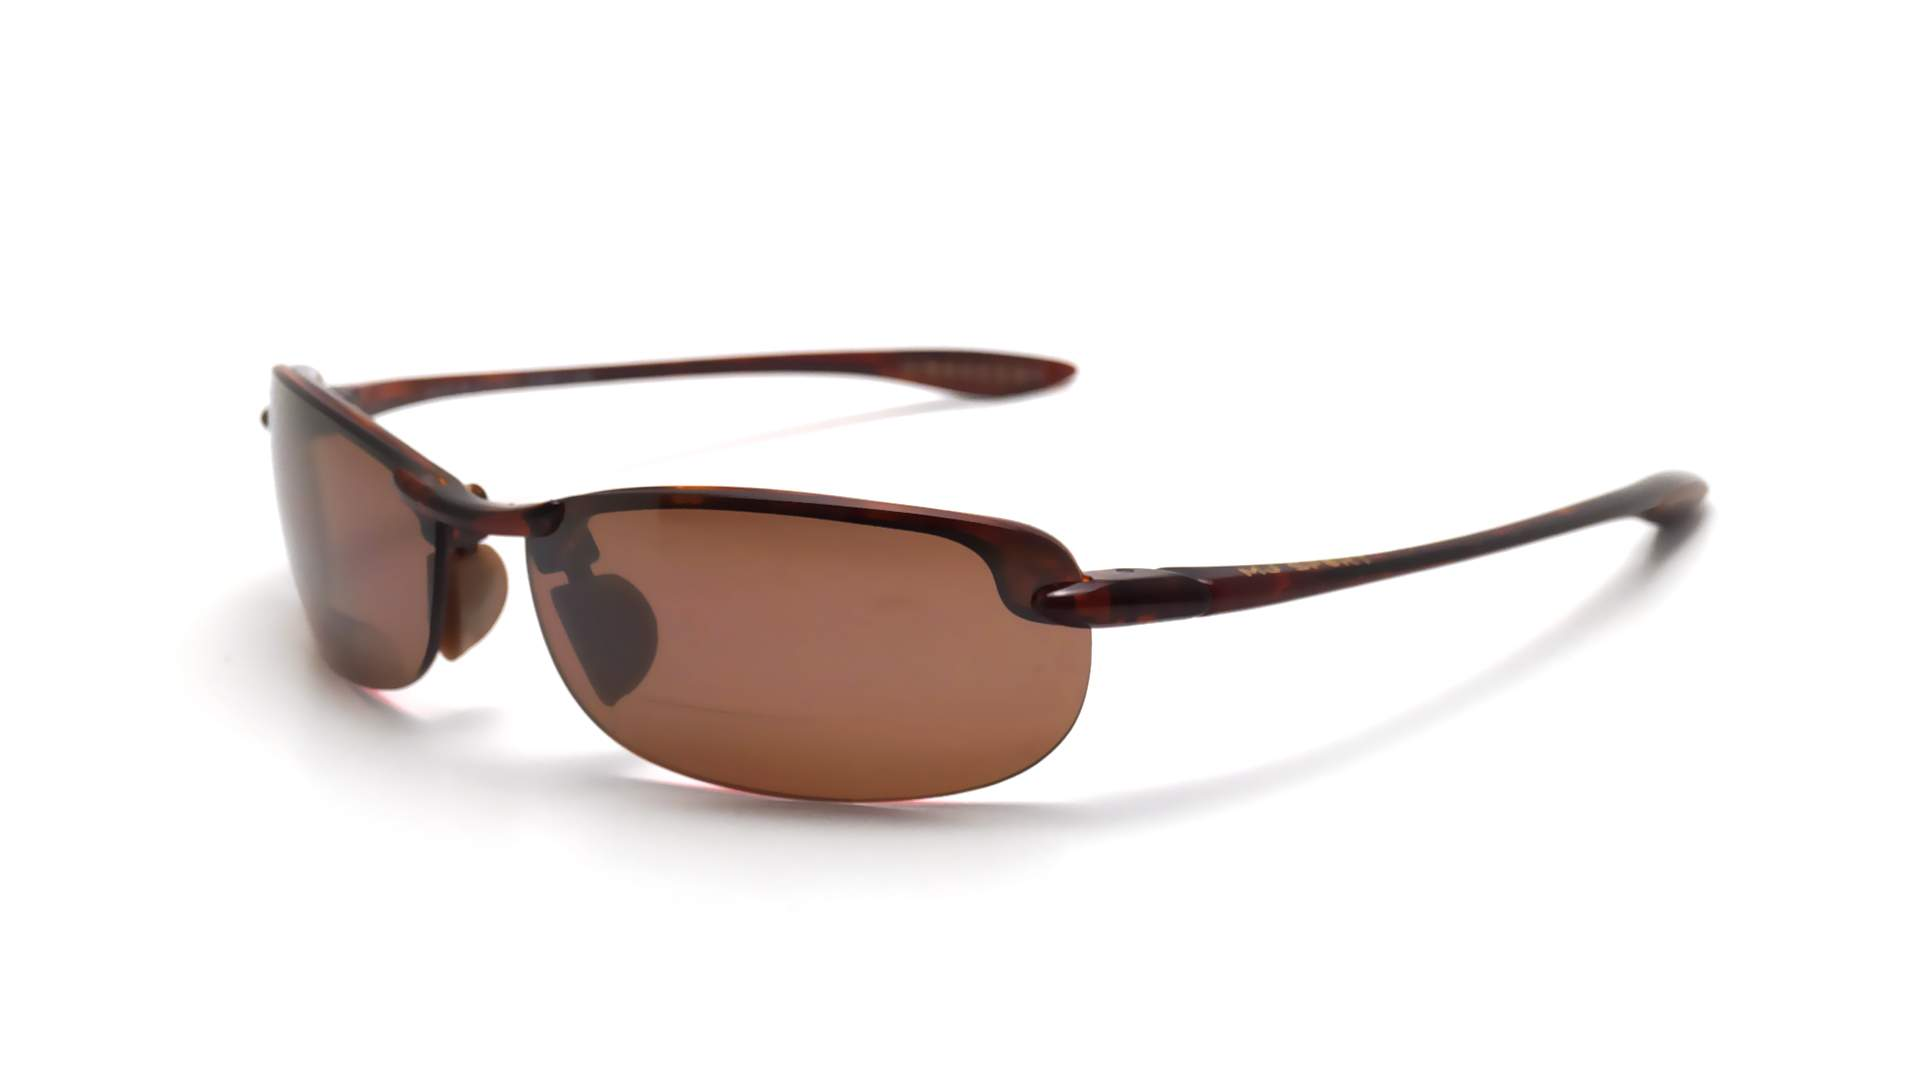 20 Makaha Polarized Jim 10 Reader H805 Maui Brown YWDIH9E2